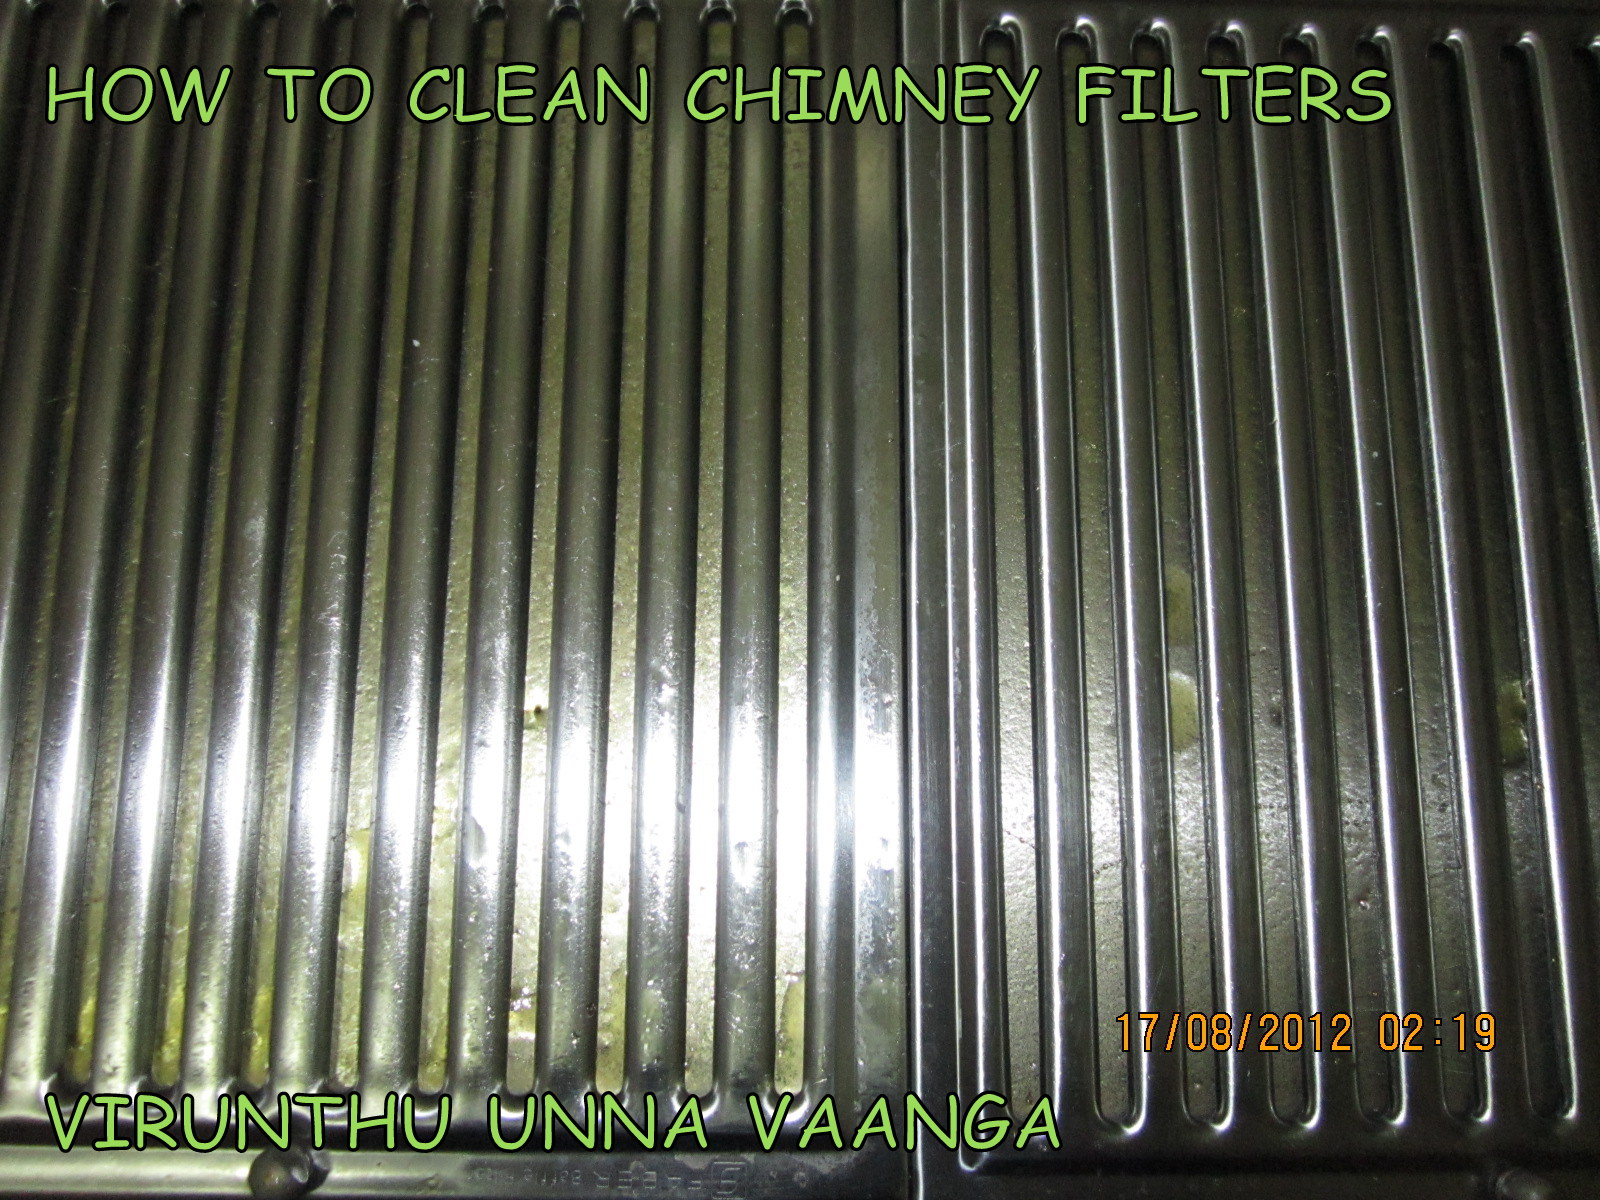 delightful How To Clean Kitchen Chimney Grease #1: Take the baffle filters from the chimney.